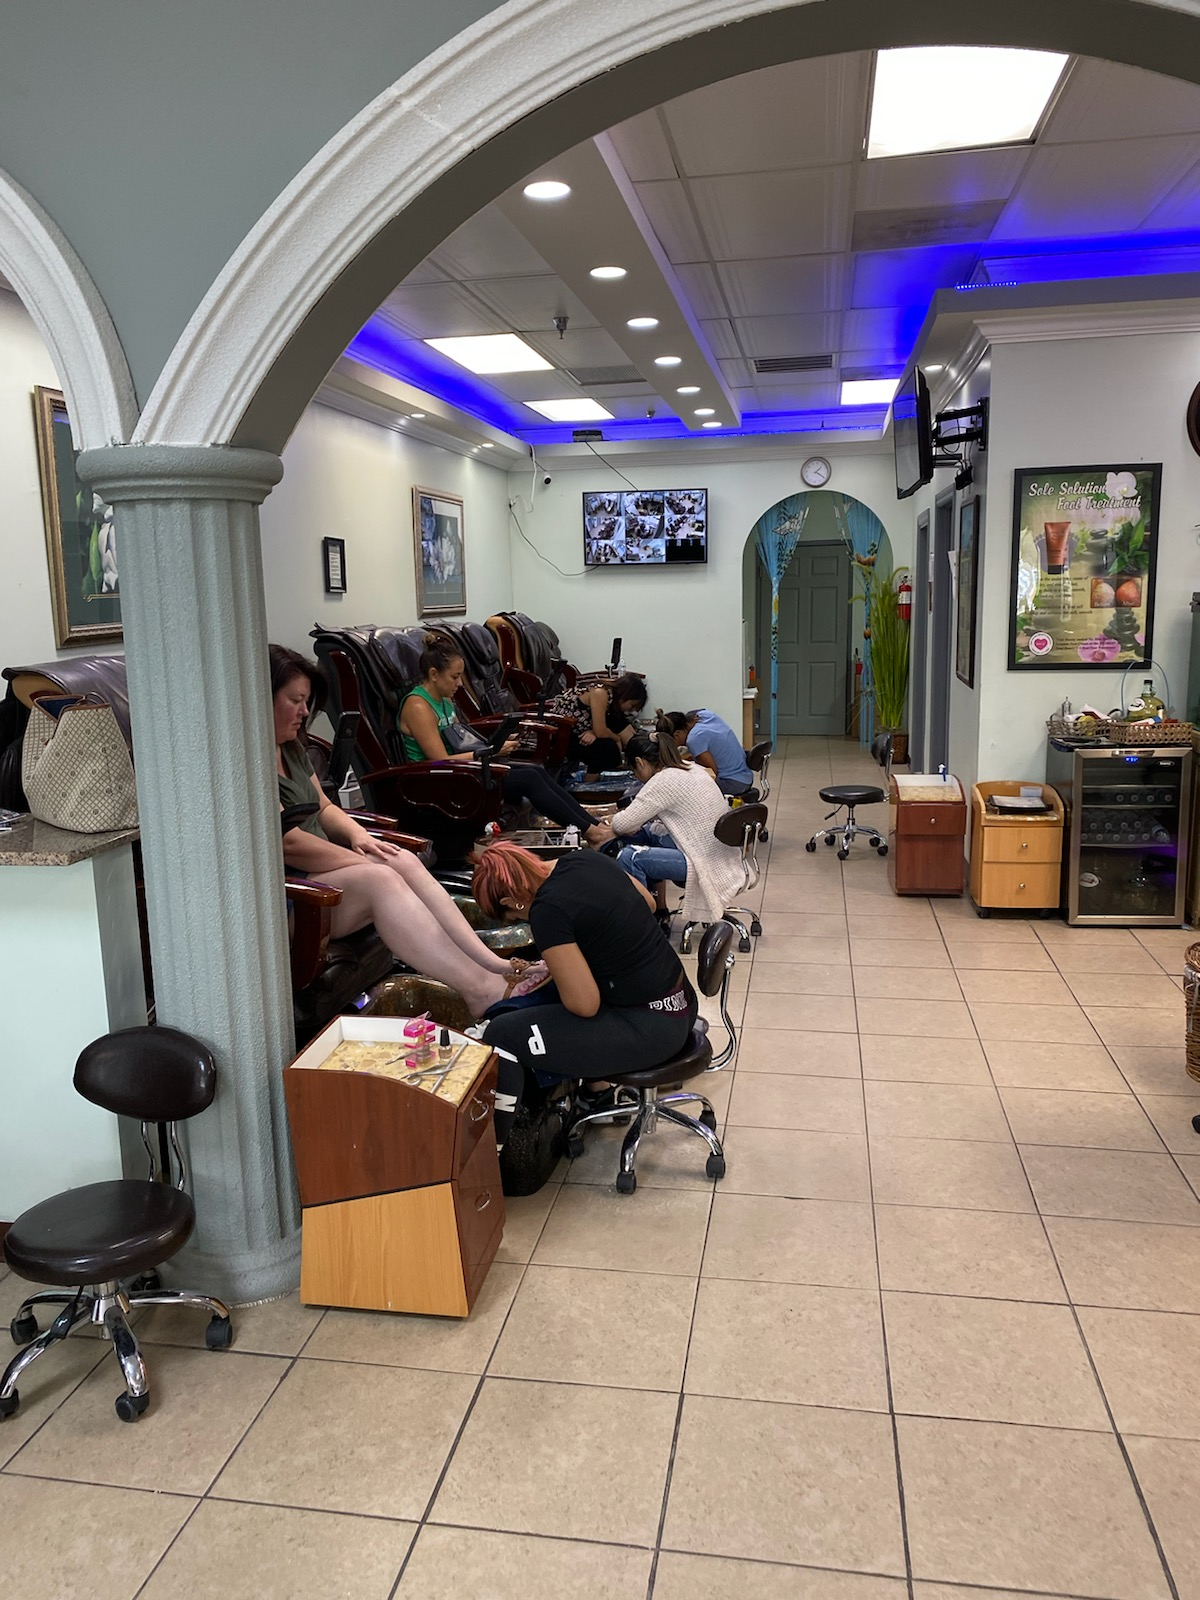 TK Nails - Best nail salon in Cape Coral FL 33909